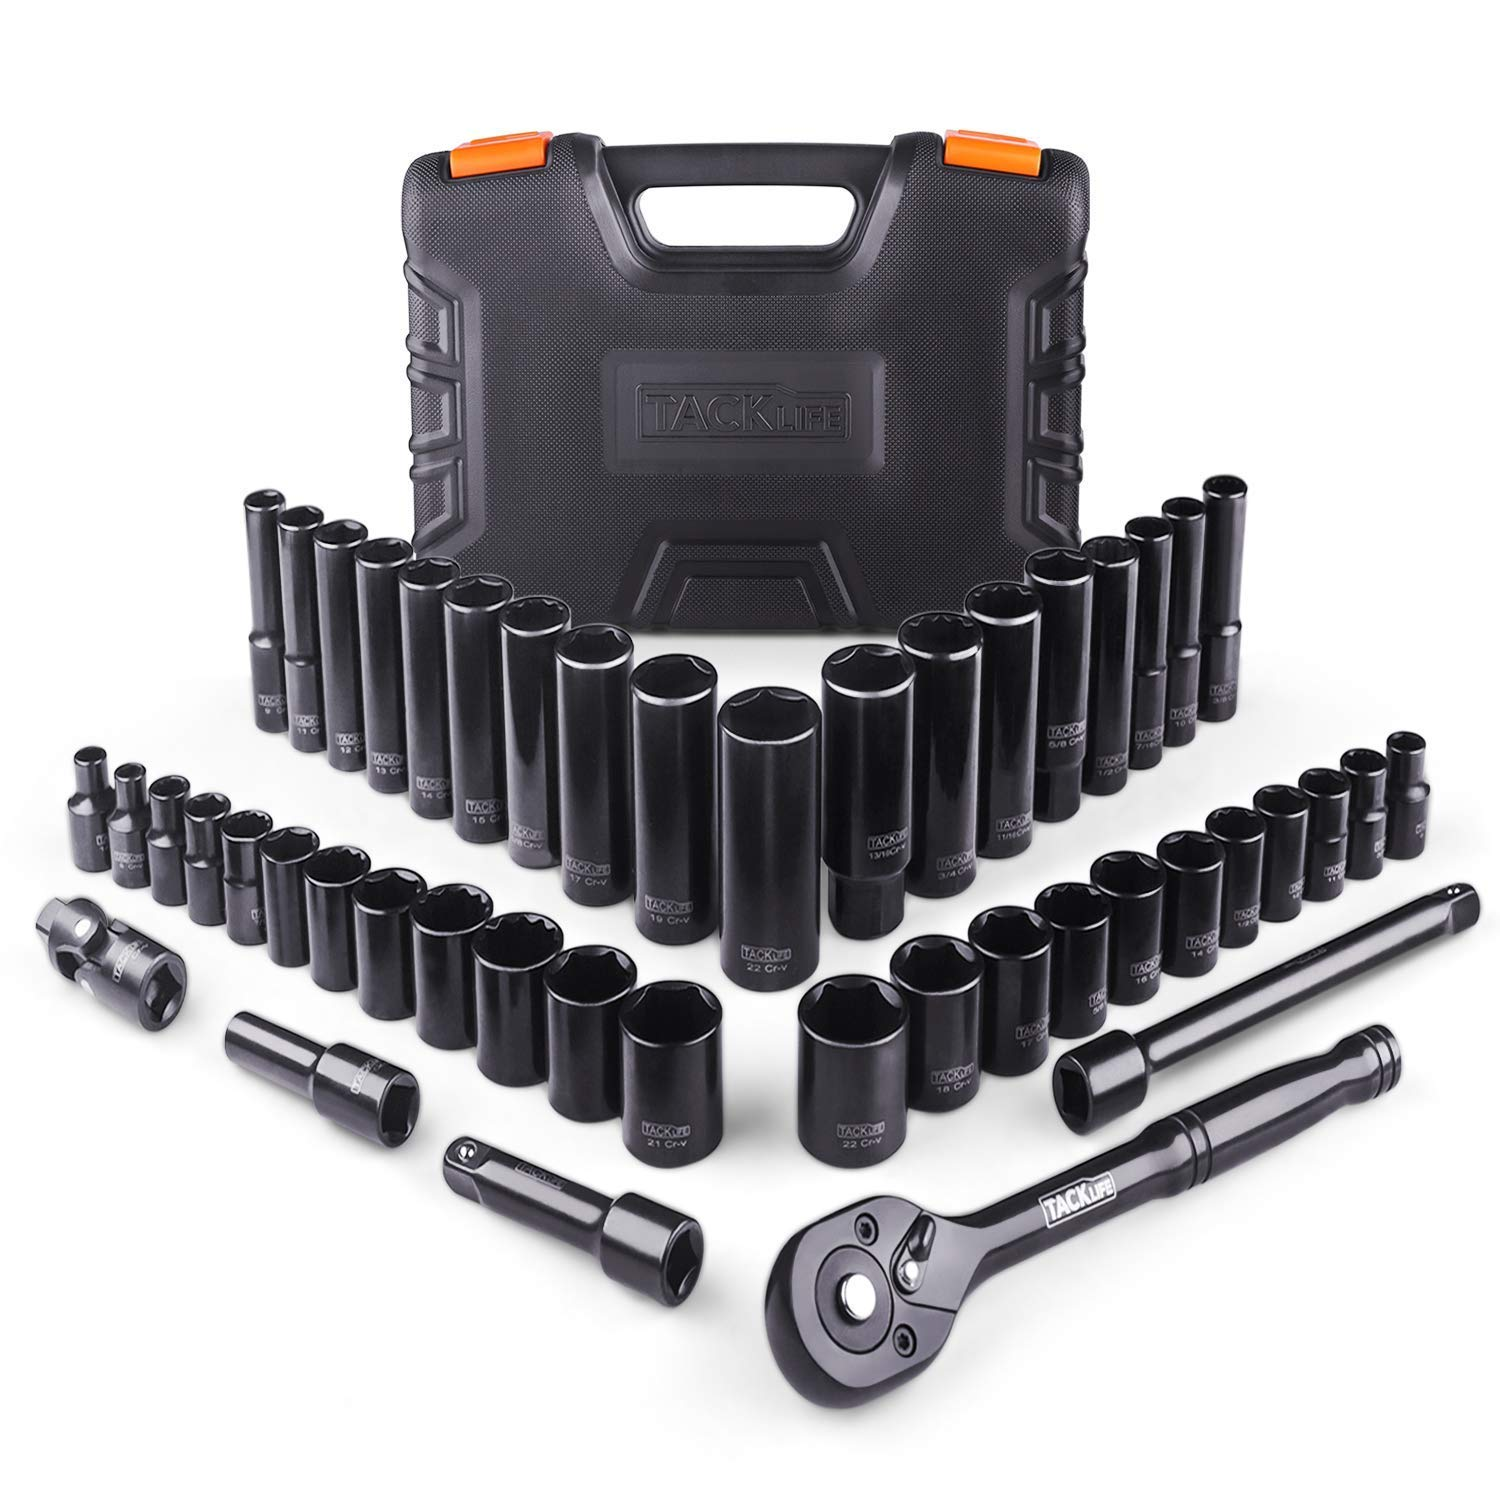 TACKLIFE 46pcs 3/8'' Drive Socket Set, 72-Teeth Ratchet With Metric & SAE Sockets, Upgraded Accessories - SWS2A by TACKLIFE